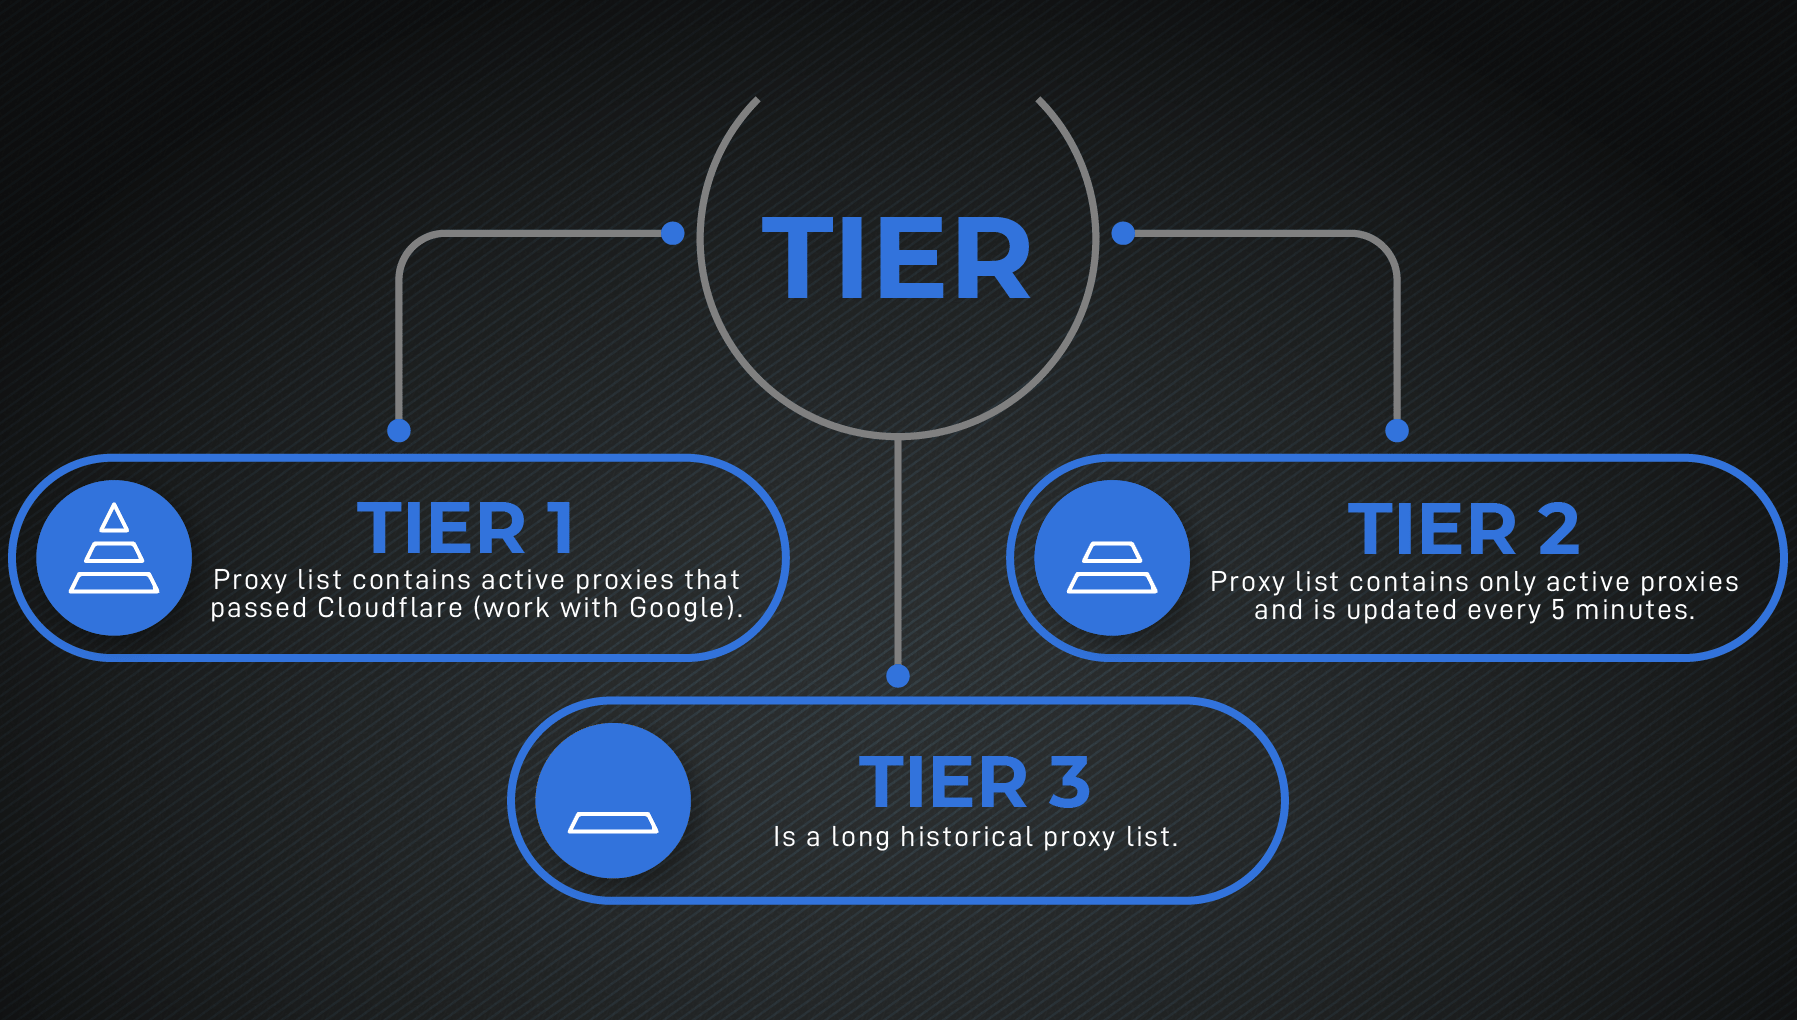 Tier 1 ingographic for the Best Proxy Providers